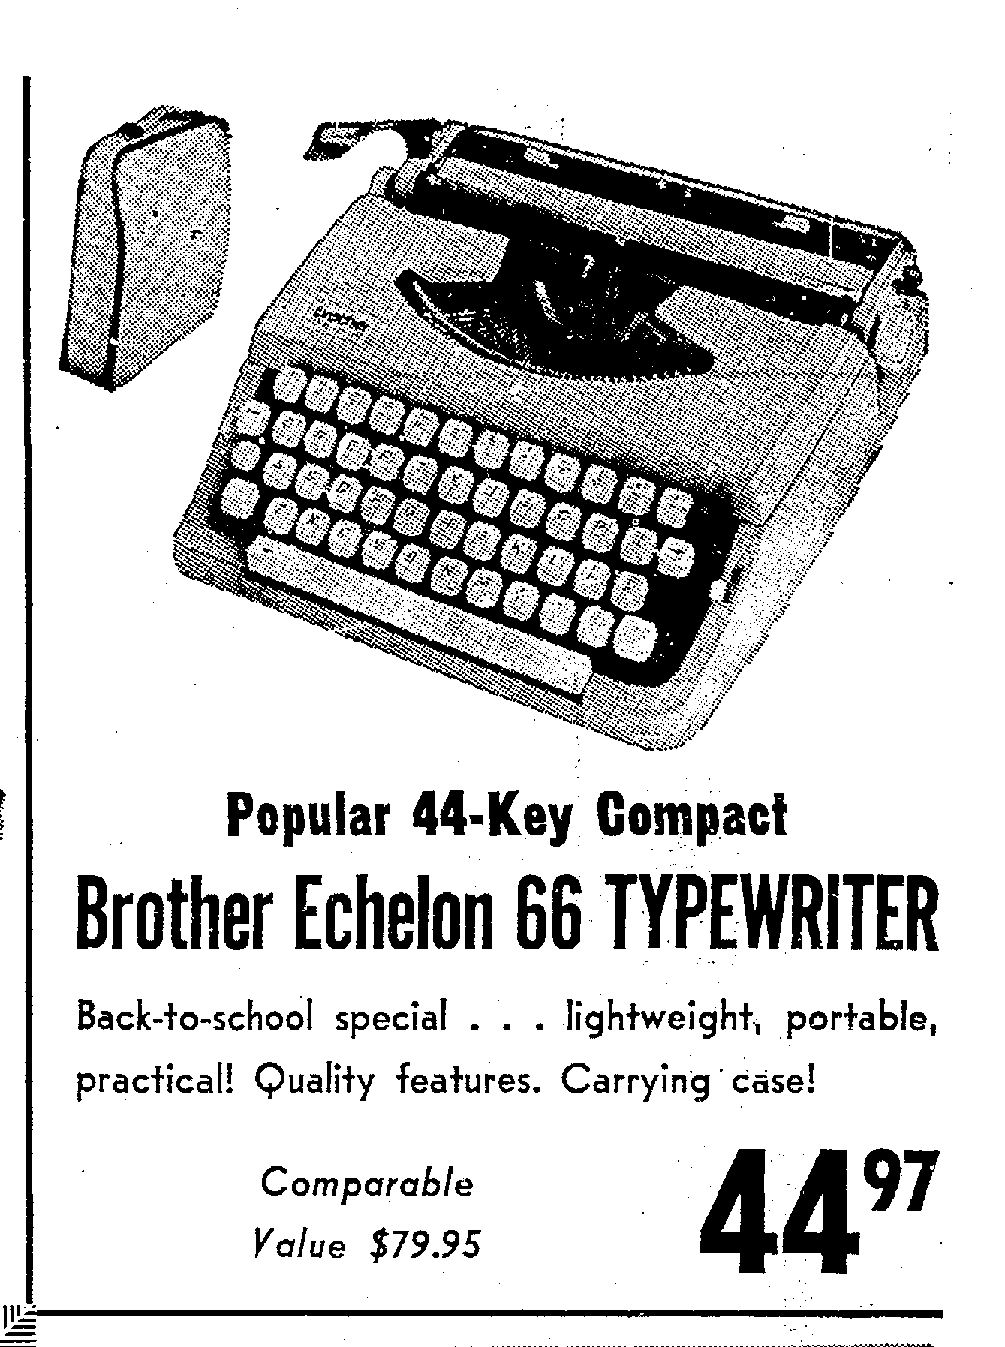 Seattle-Firs Typewriter: 1966 Brother Echelon 66